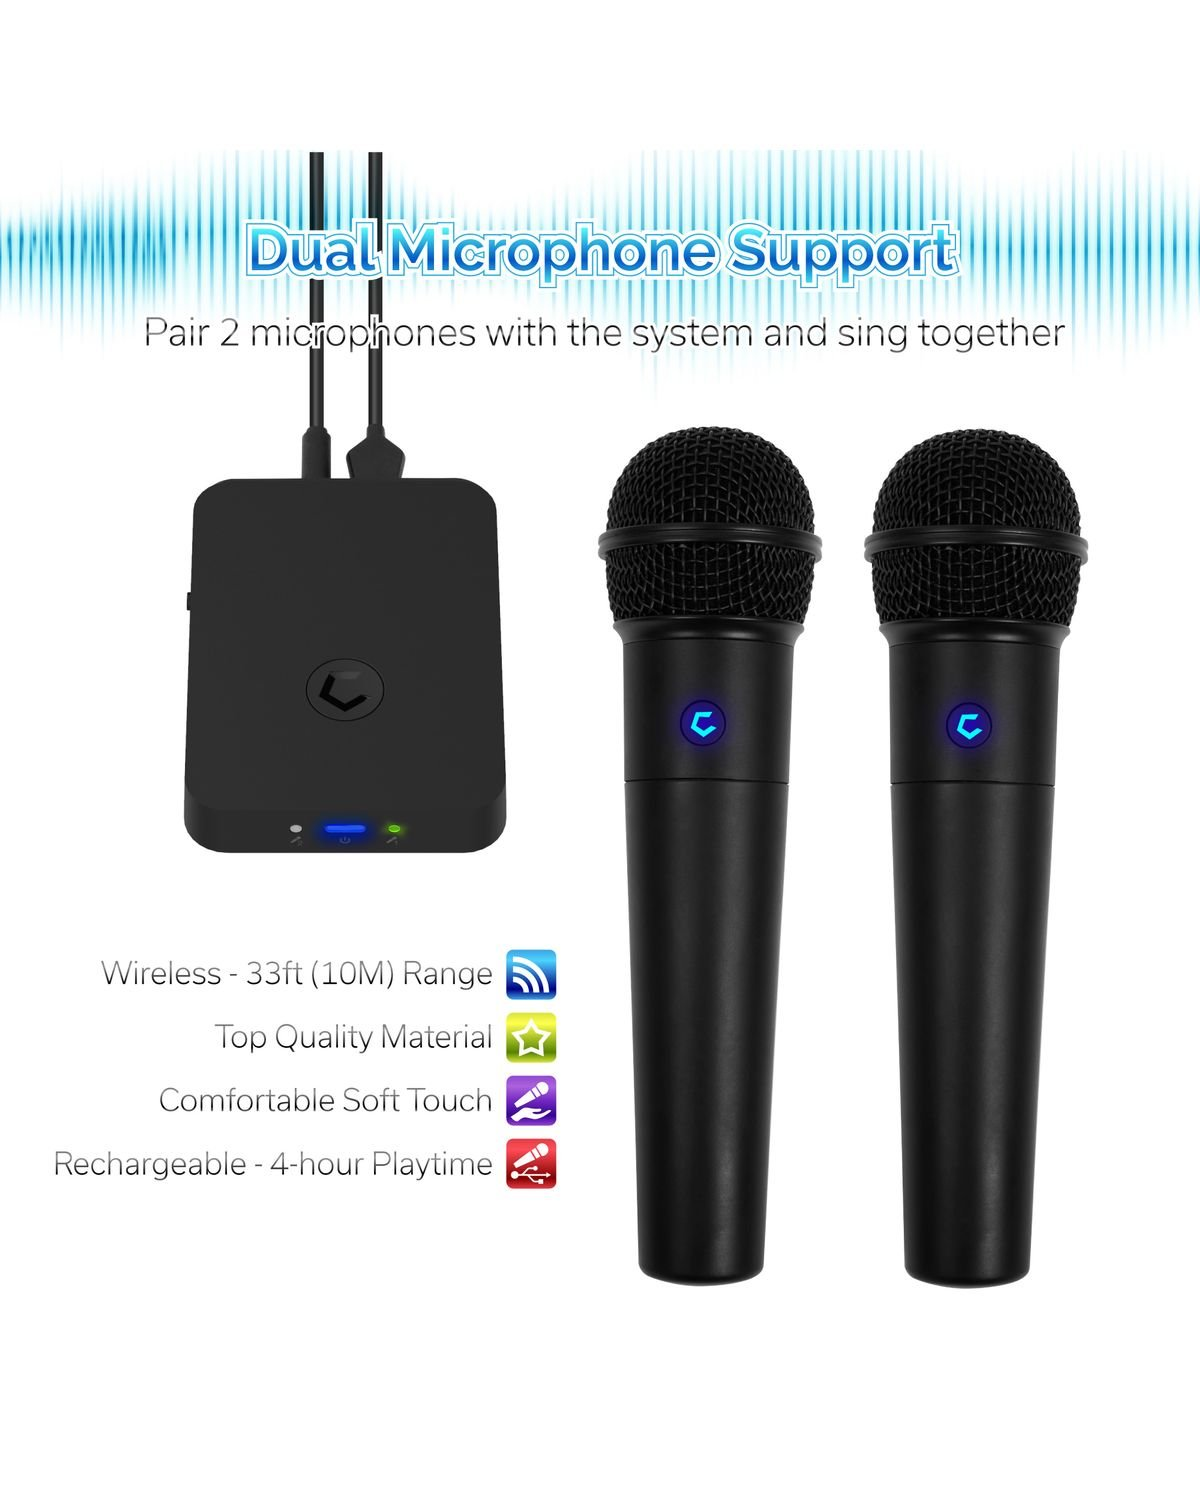 Cobble Pro Wireless Karaoke Microphone 2-pack Mic [Source Vocal Removal Technology][Choose Unlimited Music Source from YouTube, Compatible with iPhone iPad Phone Tablet] New Model BT Speaker Machine by Cobble (Image #5)